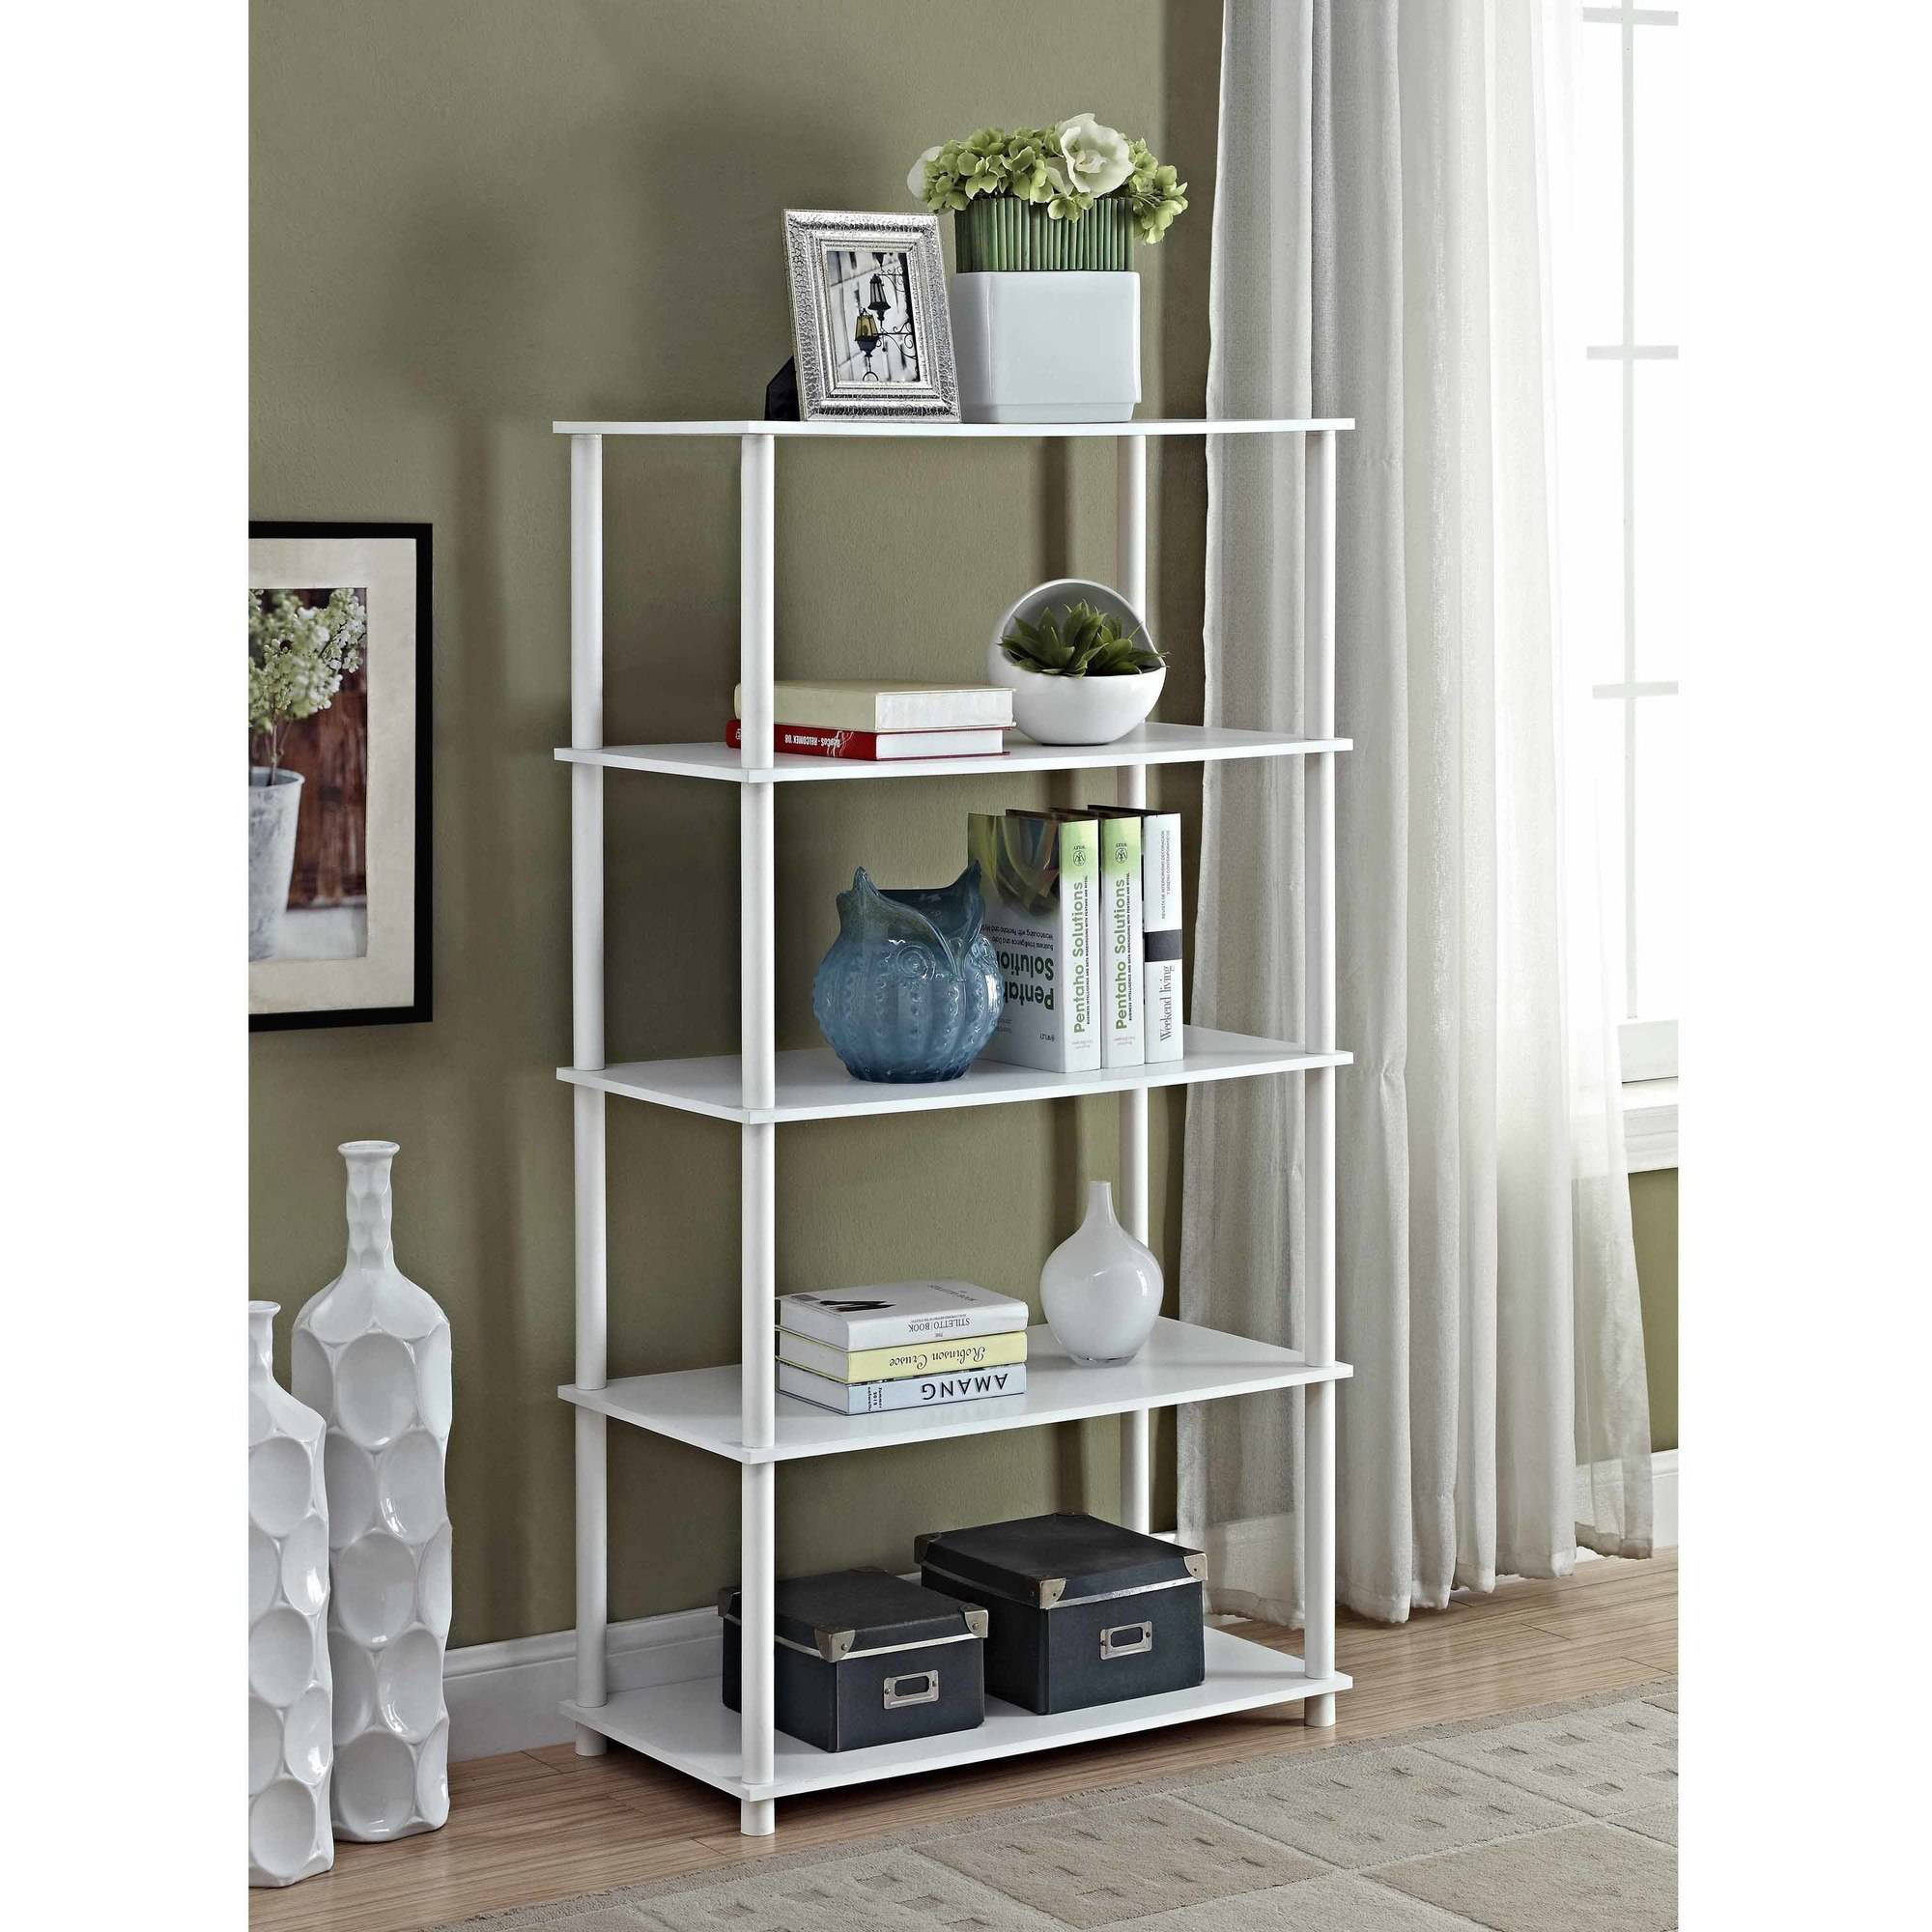 storage shelves walmart mainstays no tools assembly 8 cube shelving storage unit 26892